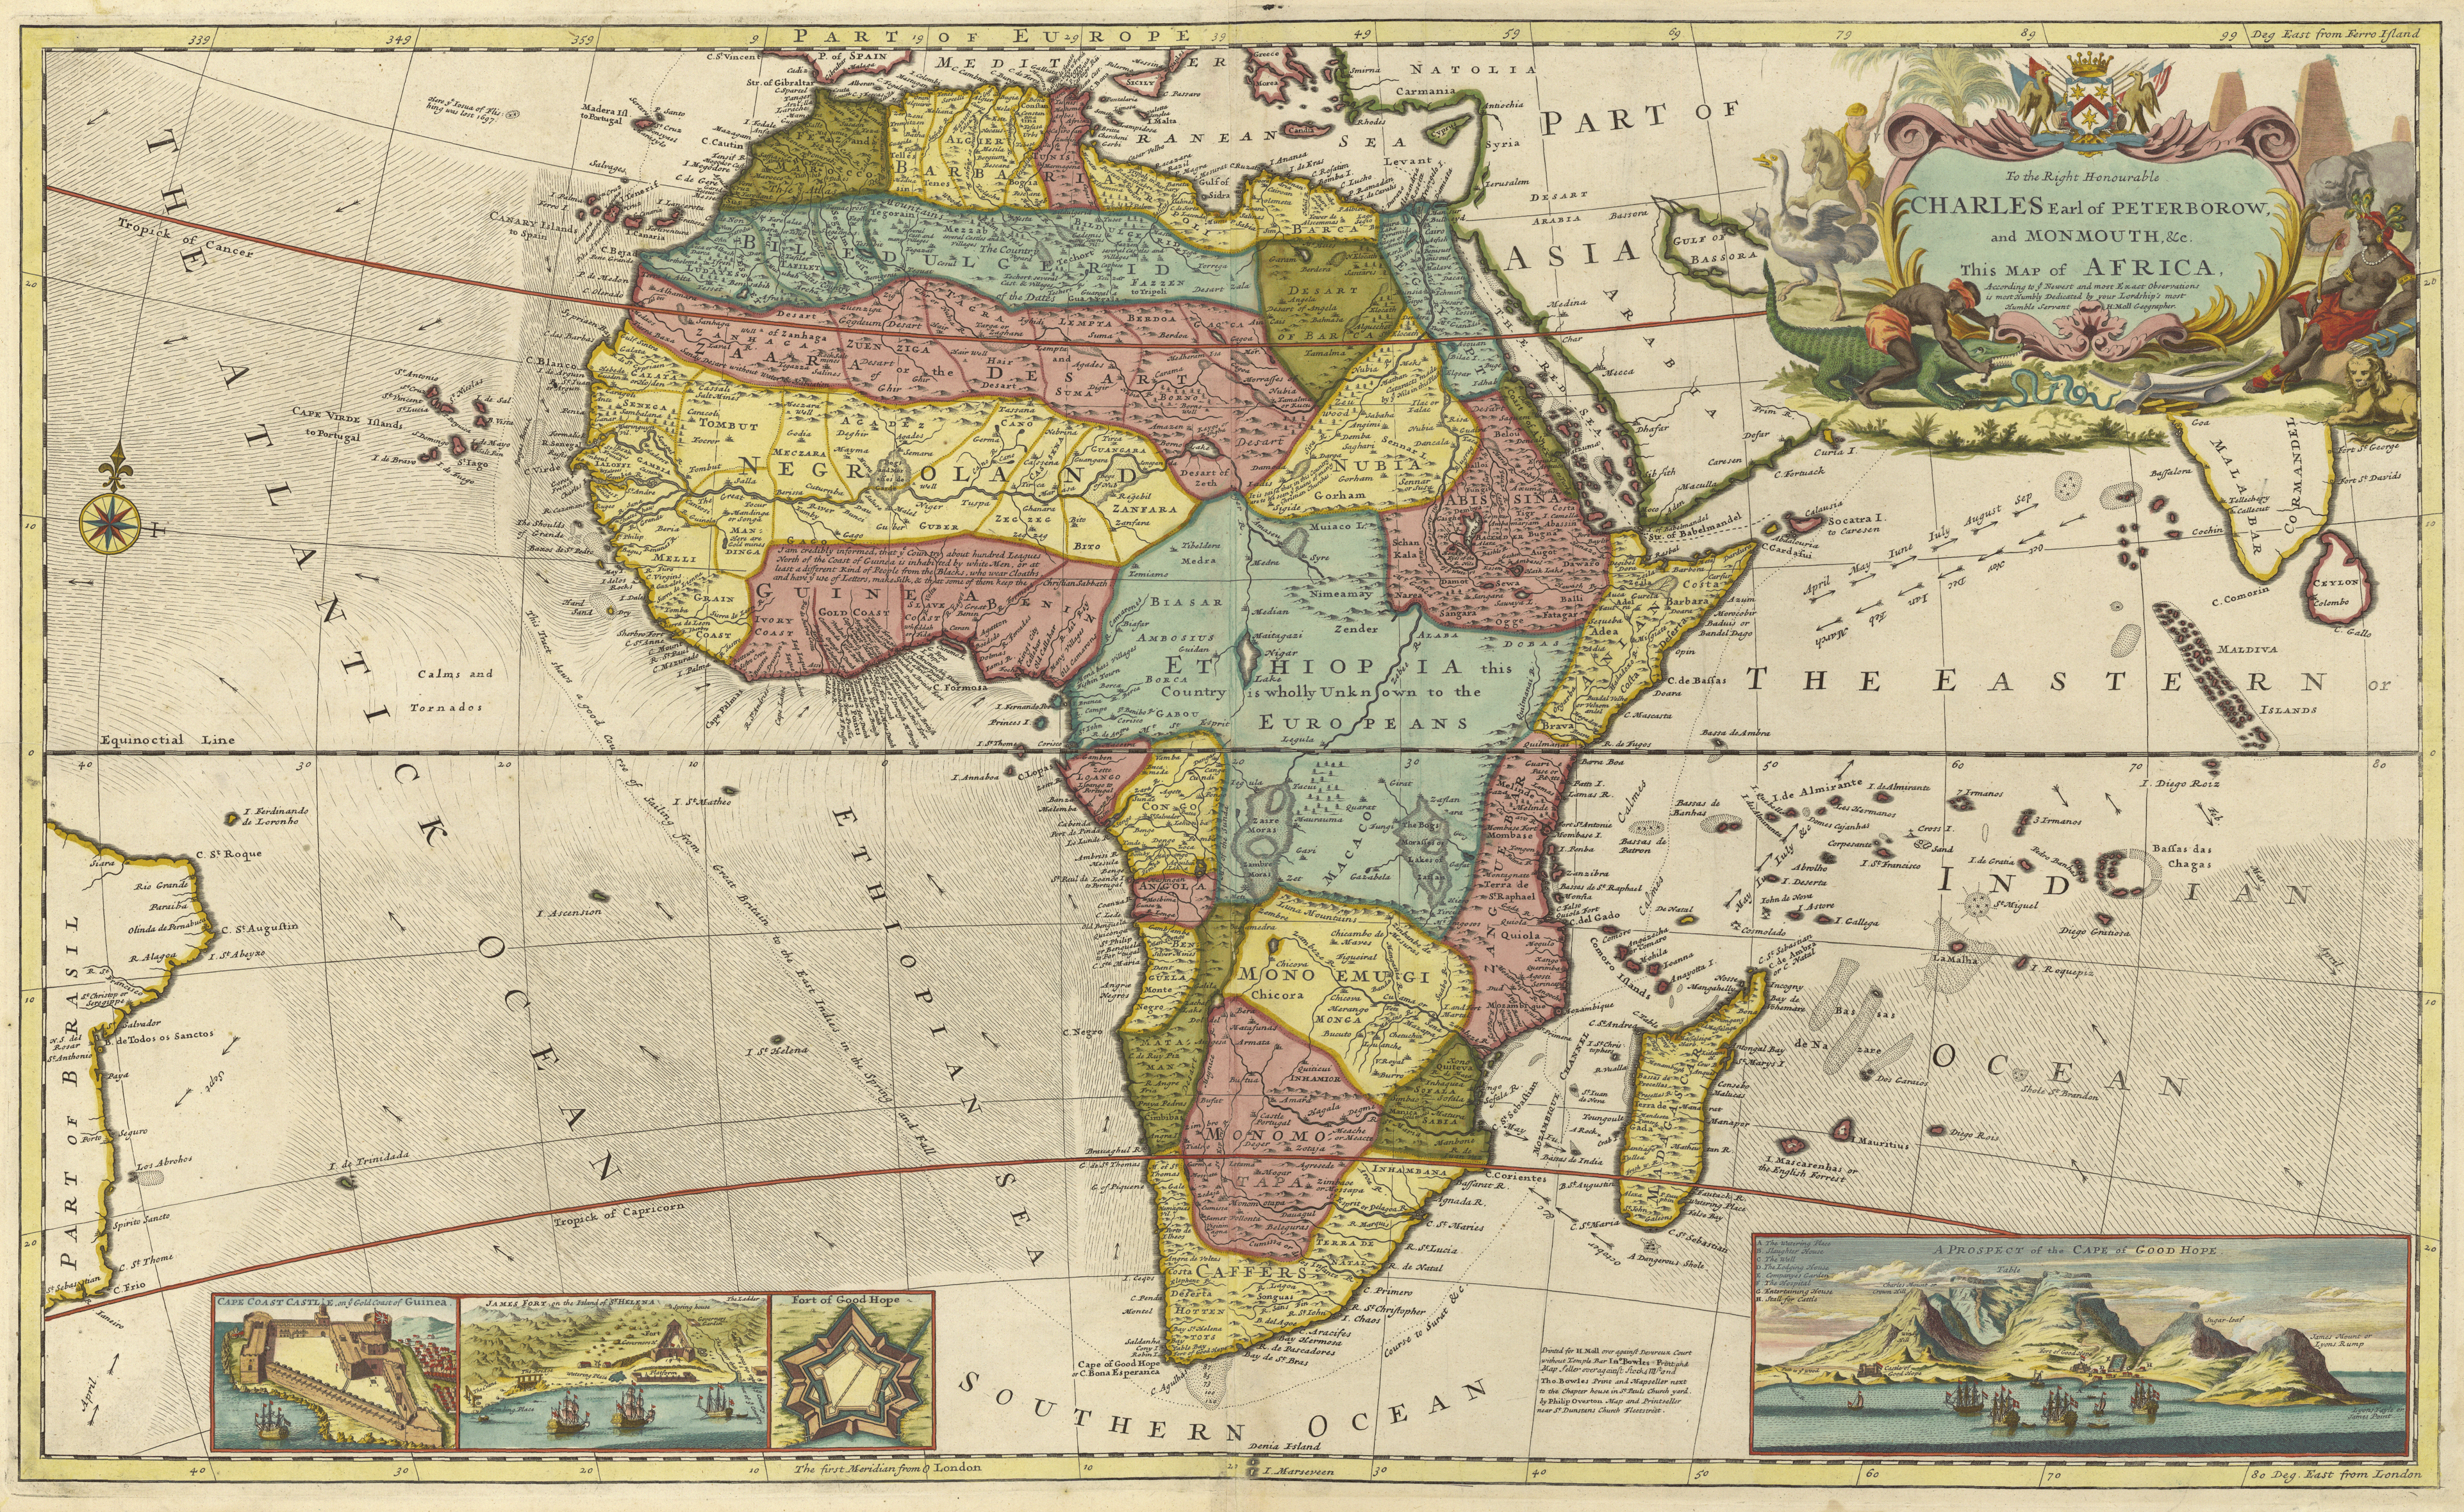 Africa mapped: how Europe drew a continent | News | The Guardian